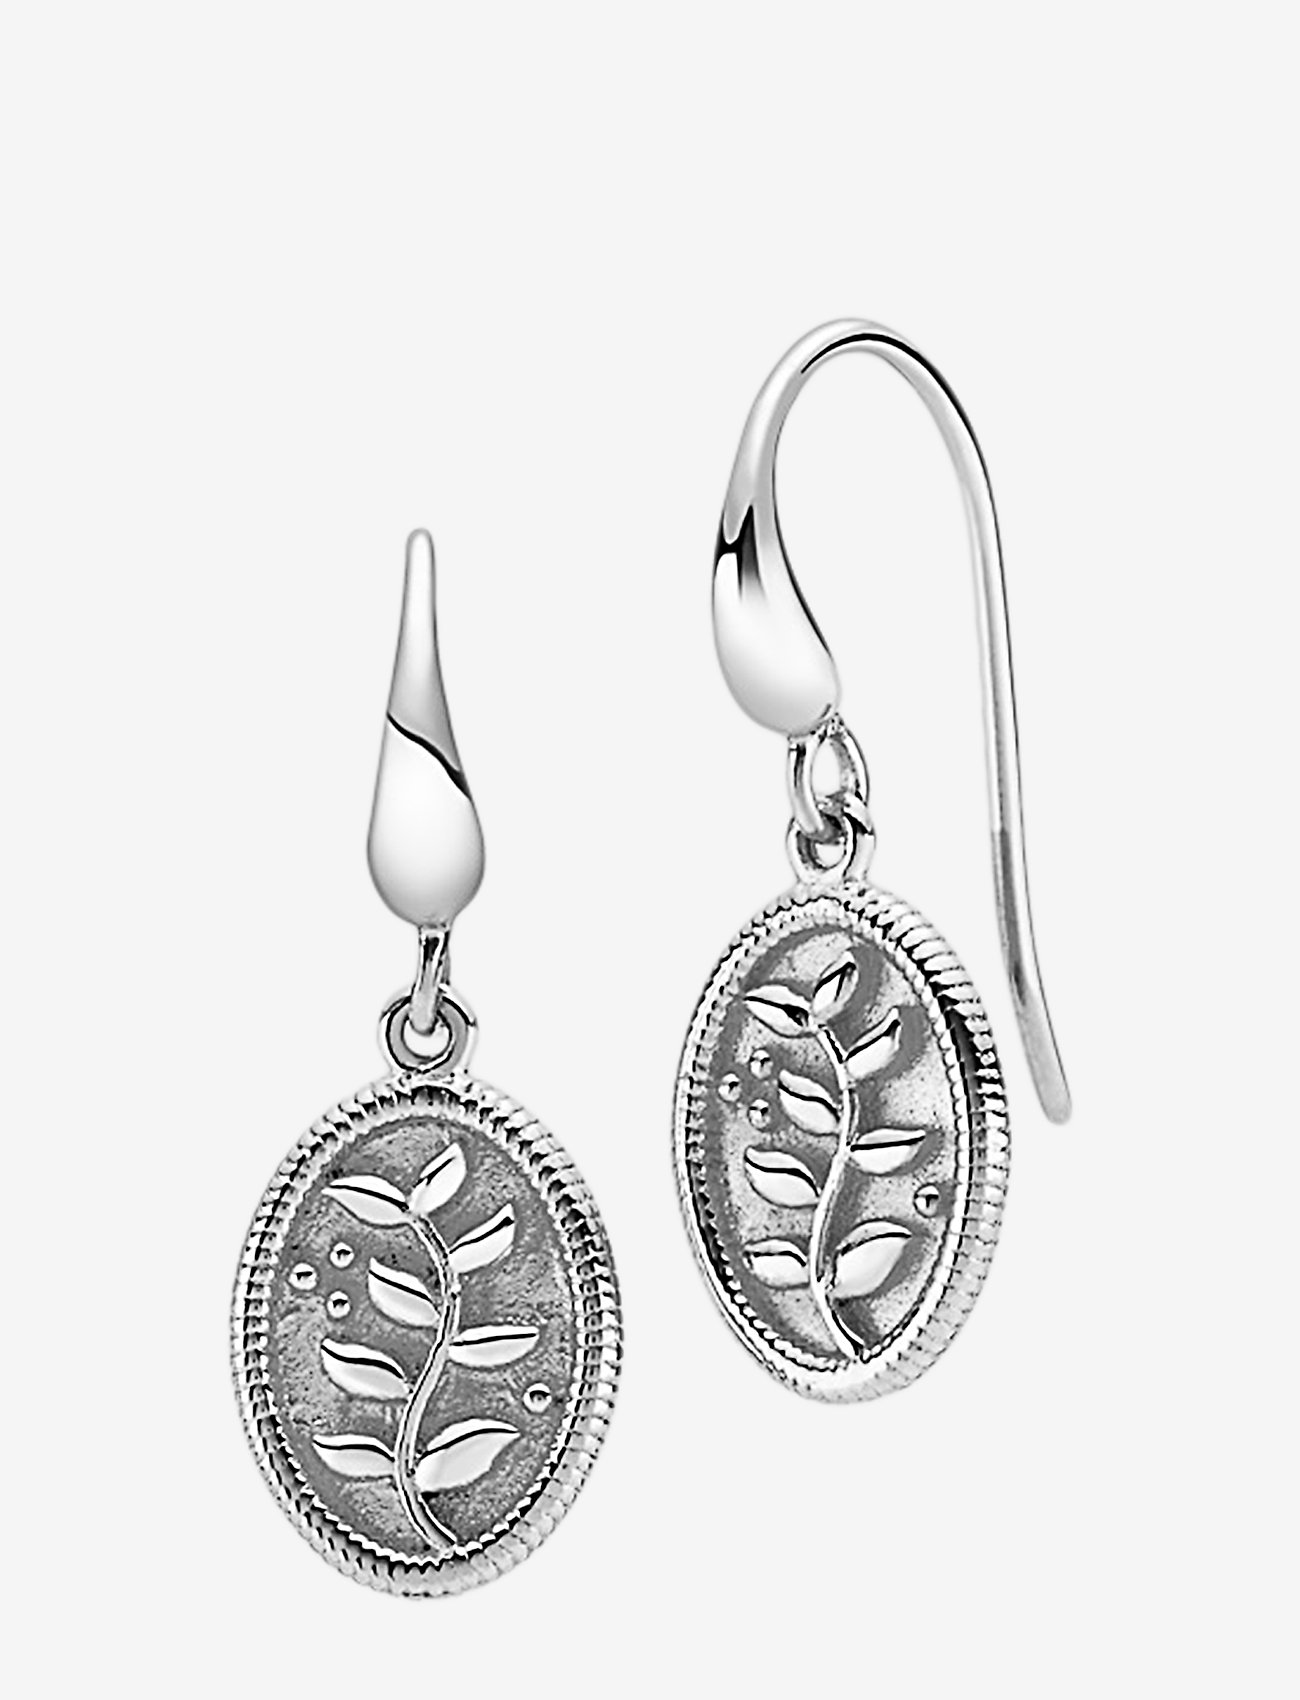 Izabel Camille - Anna - pendant - rhodium plated sterling silver